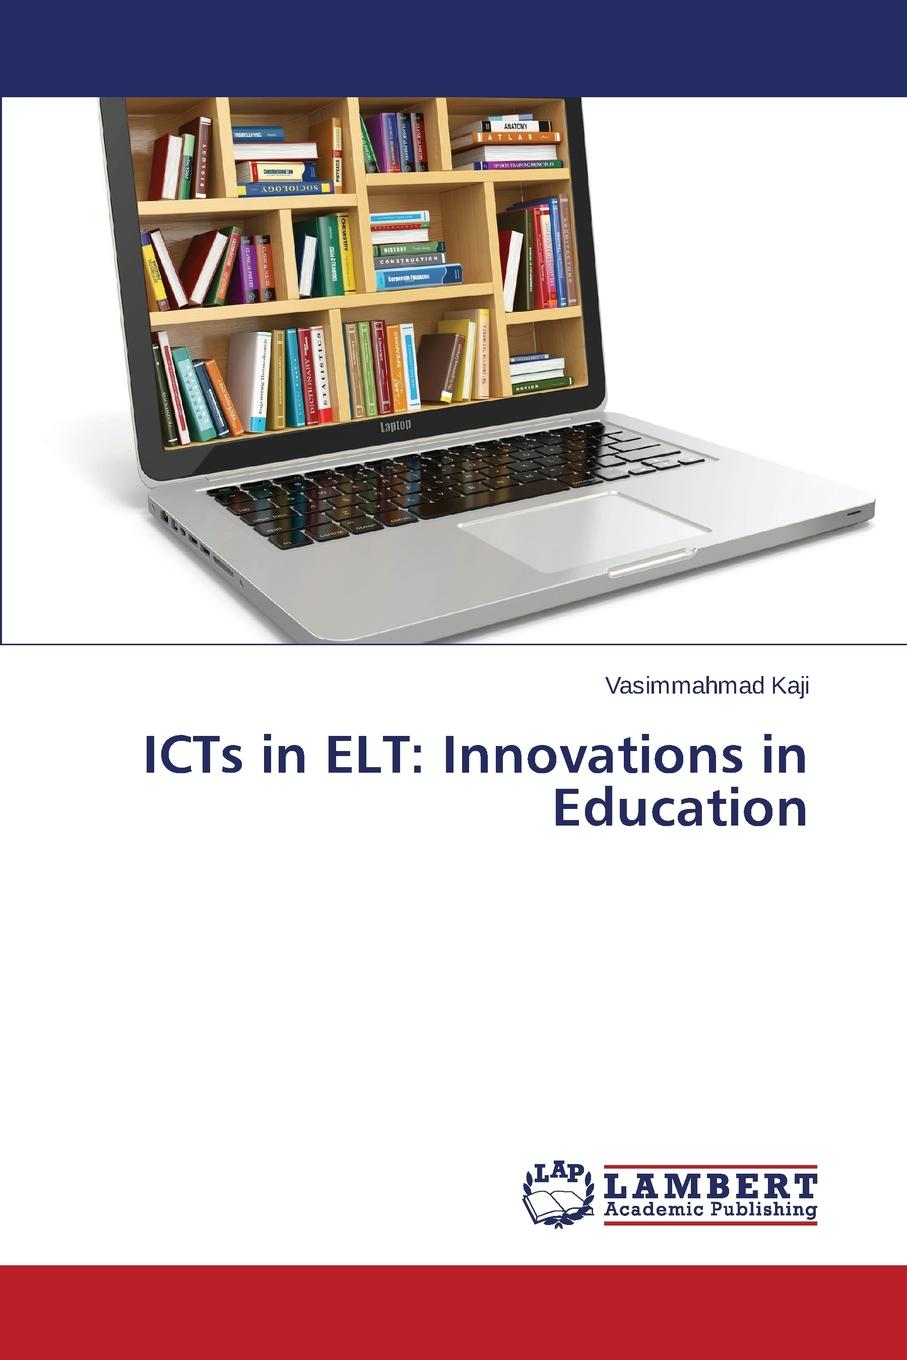 Kaji Vasimmahmad ICTs in ELT. Innovations in Education